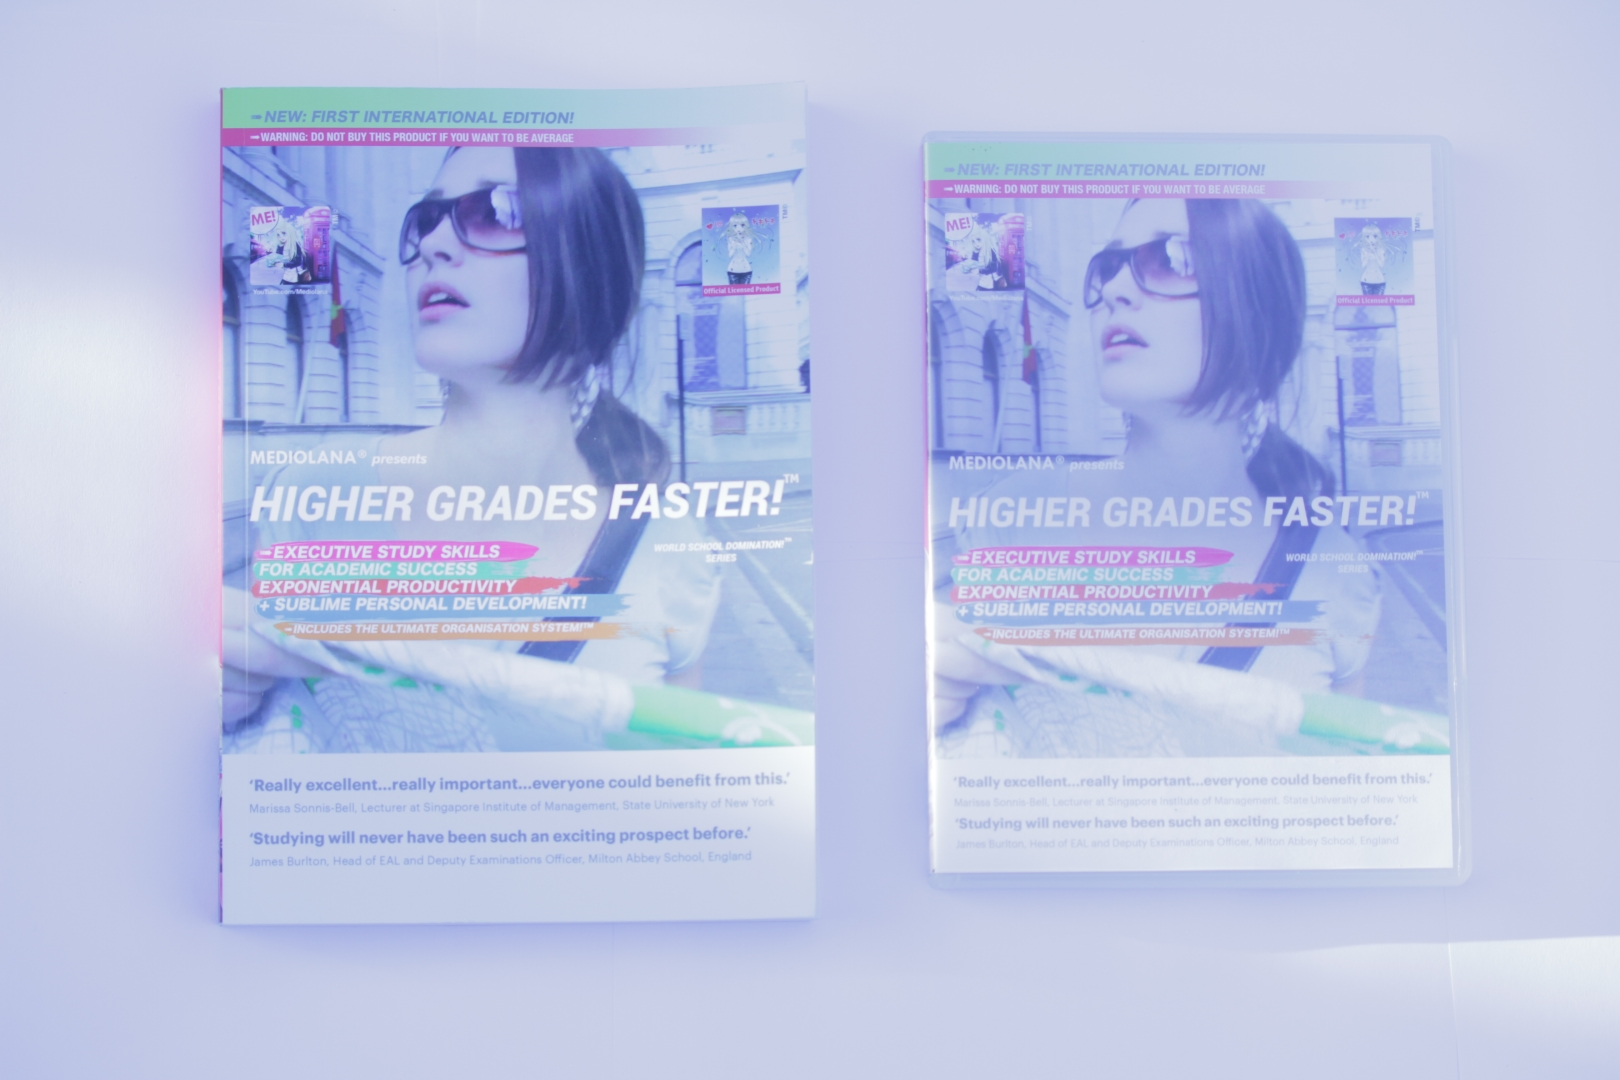 Higher Grades Faster! – Exponential Productivity